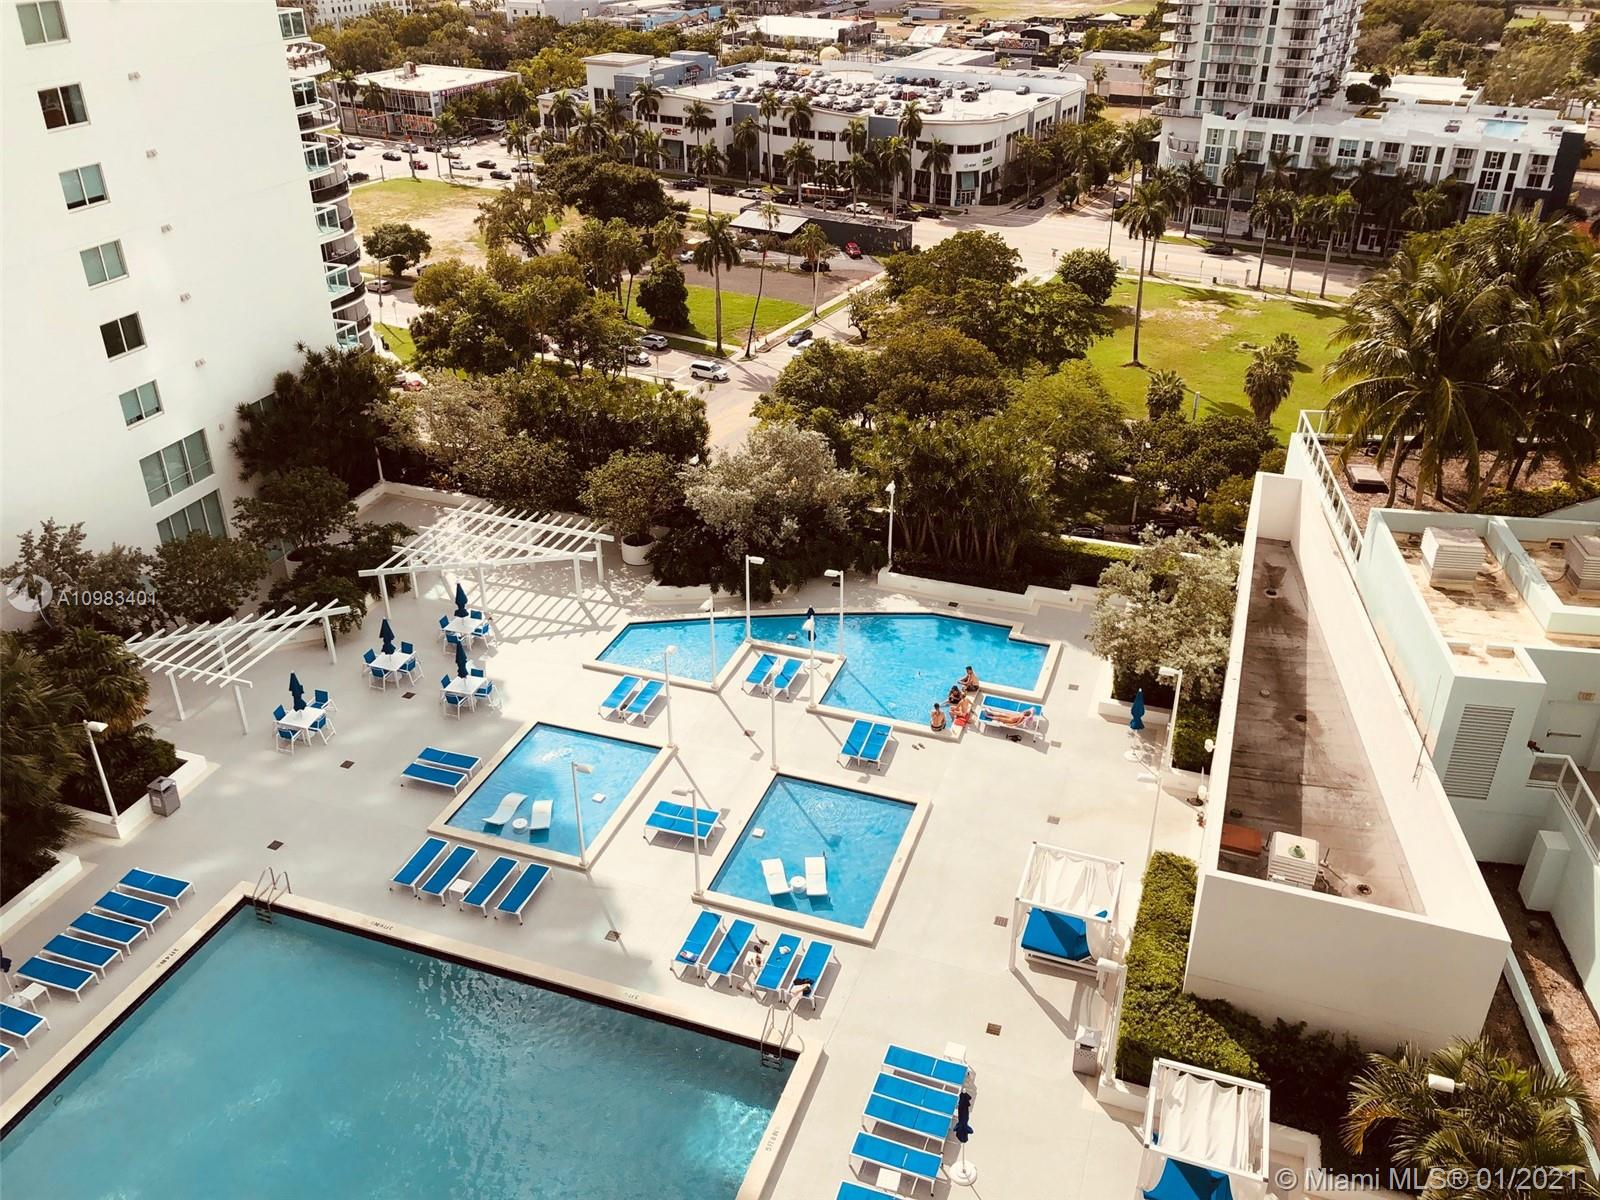 BEAUTIFUL 2/2 W/ 1144 + 192 SQ FT IN TERRACE W/SPECTACULAR SUNSET/POOL VIEWS FROM THE 20TH FLOOR. FLOOR-TO-CEILING WINDOWS IN THE LIVING/DINING & BOTH BEDROOMS,OPEN KITCHEN,SPLIT BEDROOMS,WOOD & MARBLE FLOORS & WASHER/DRYER.CABLE, HIGH SPEED INTERNET & 1 PARKING INCLUDED IN RENT.FULL AMENITIES BUILDING INCLUDING VALET,DOORMAN,CONCIRGE,POLL & GYM ATTENDANT,IN_HOUSE MANAGEMENT,SPECTACULAR POOL AREA, STATE-OF-THE-ART GYM …….. WALK TO MARGARET PACE PARK,NIGHTLIFE, BANKS, SHOPS & PUBLIX & 3 BLOCKS TO PEOPLE MOVER. 5 MINUTES TO SOUTH BEACH, DOWNTOWN MIAMI, THE DESIGN DISTRICT, MIDTOWN & WYNWOOD.EASY ACCESS TO ALL MAJOR HIGHWAYS & PUBLIC TRANSPOTATION.EASY TO SHOW.